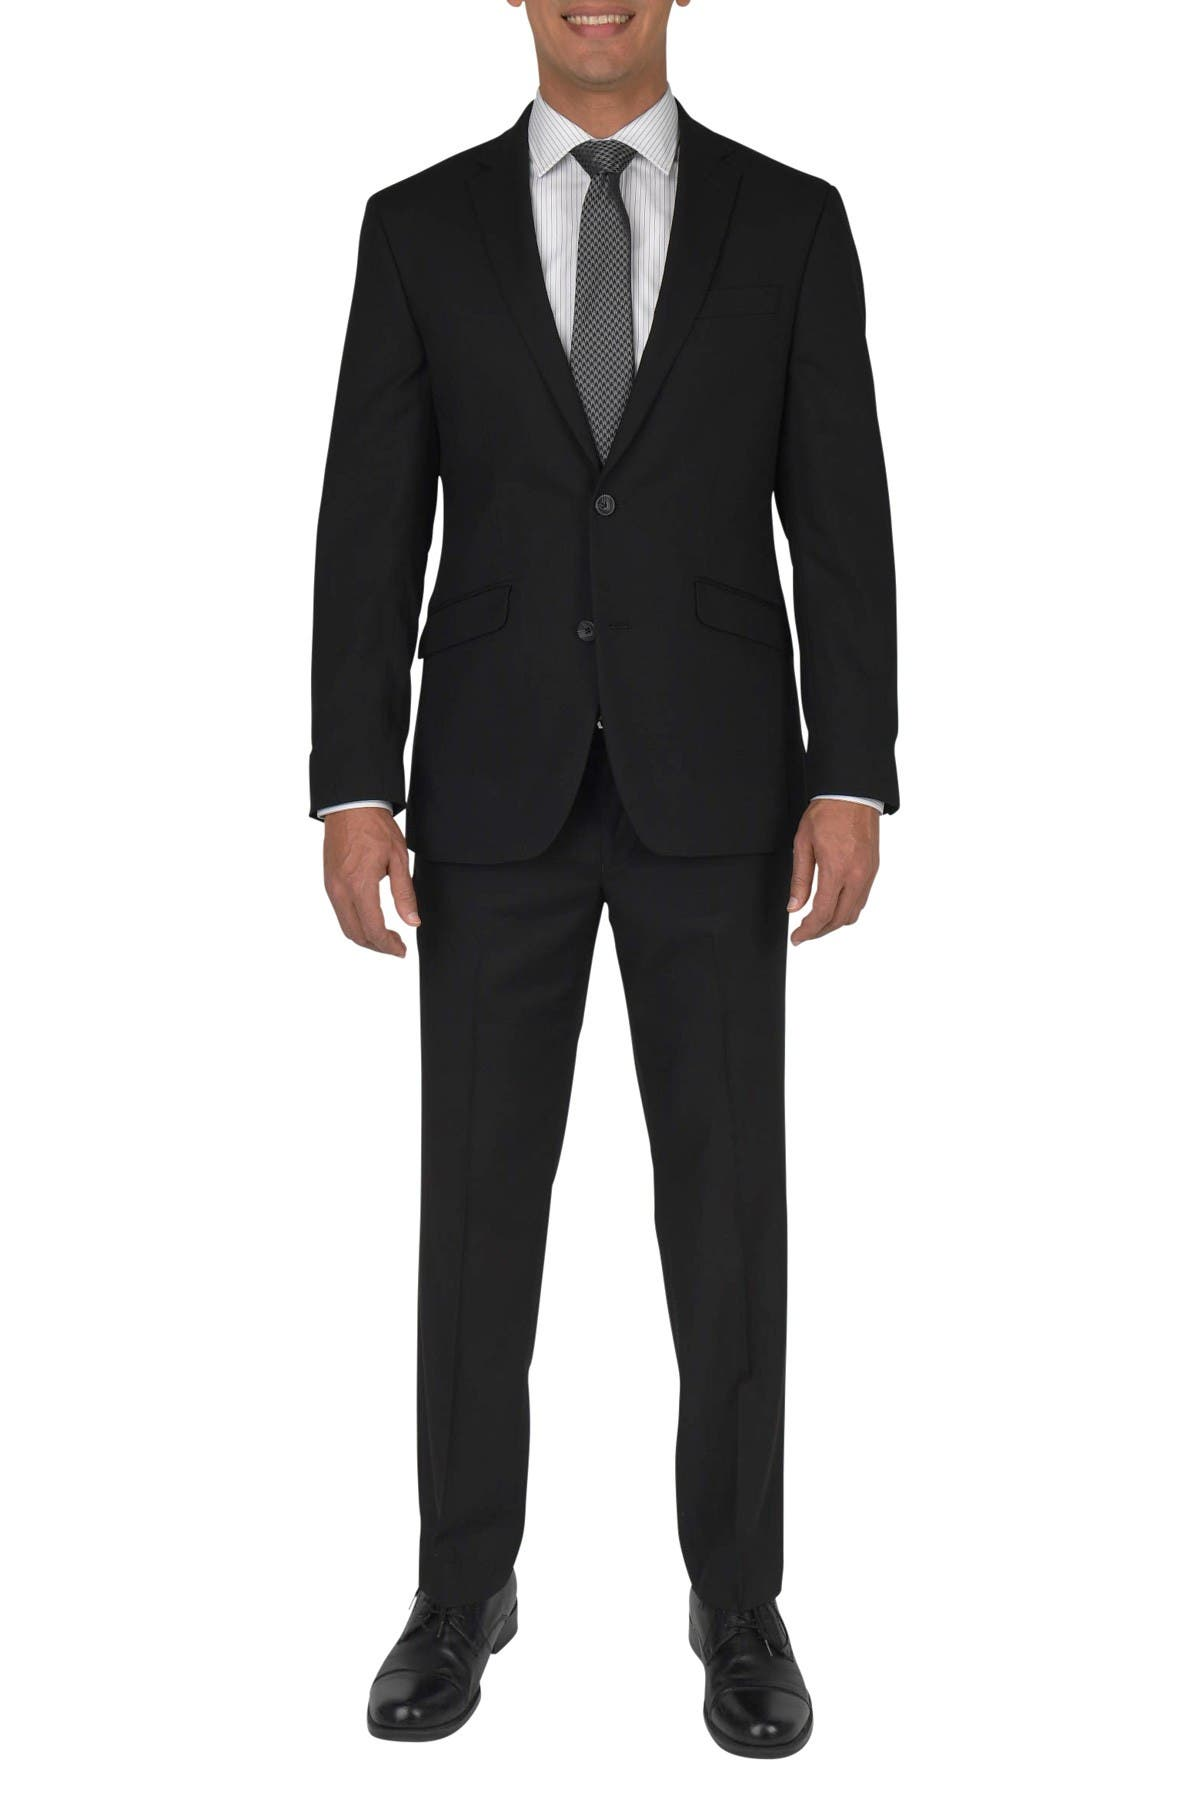 Image of Kenneth Cole Reaction Black Woven Two Button Notch Lapel Slim Fit Suit